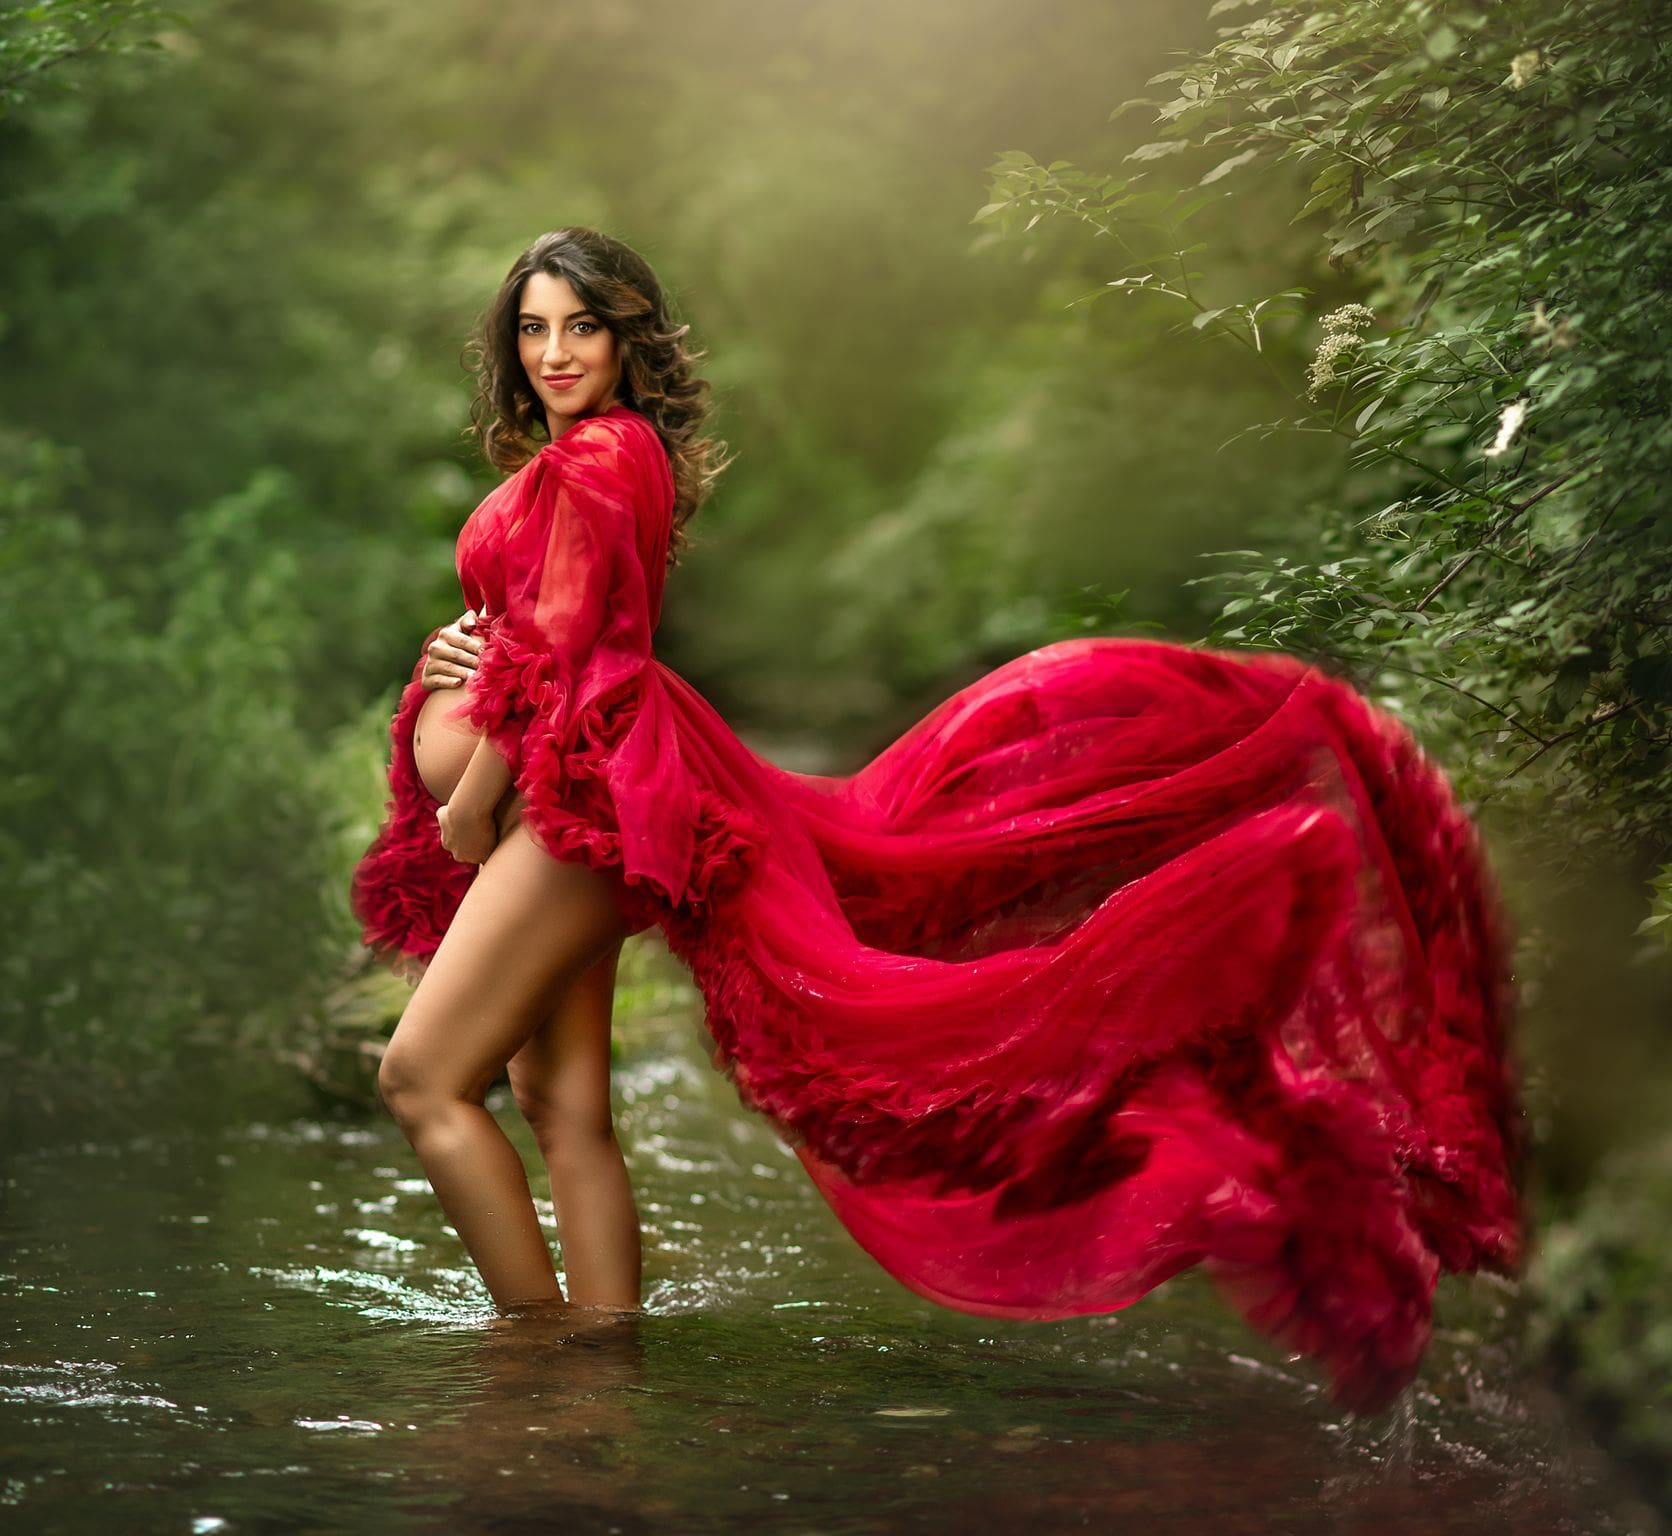 ideas for what to wear for maternity photoshoot But Natural Photography